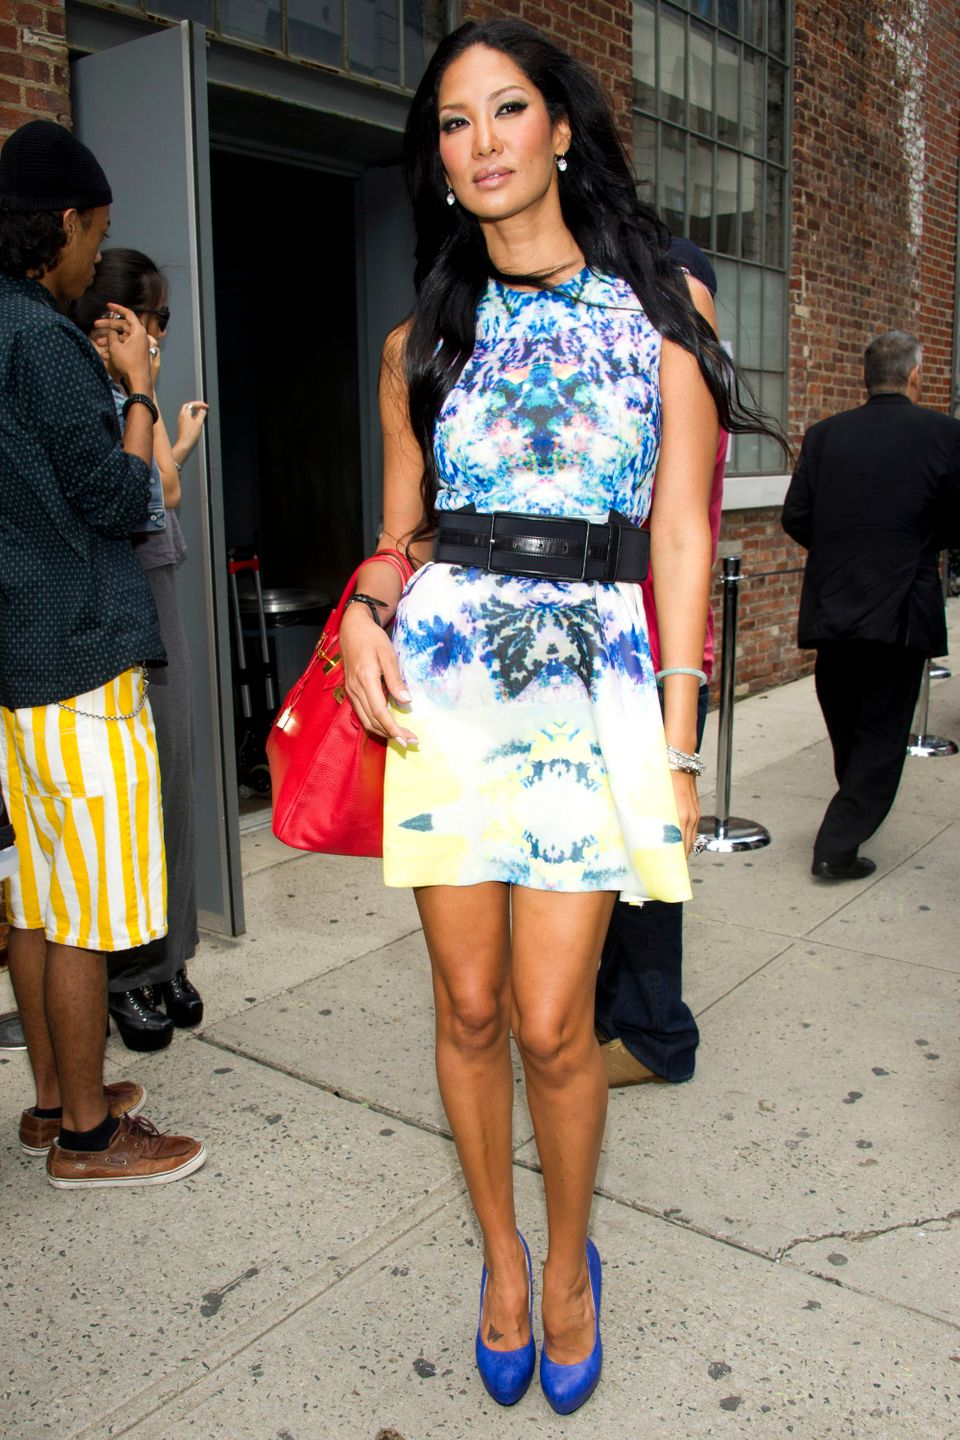 Kimora Lee Simmons attends the Donna Karan Spring 2013 show during Fashion Week in New York on Monday, Sept. 10, 2012. (Photo